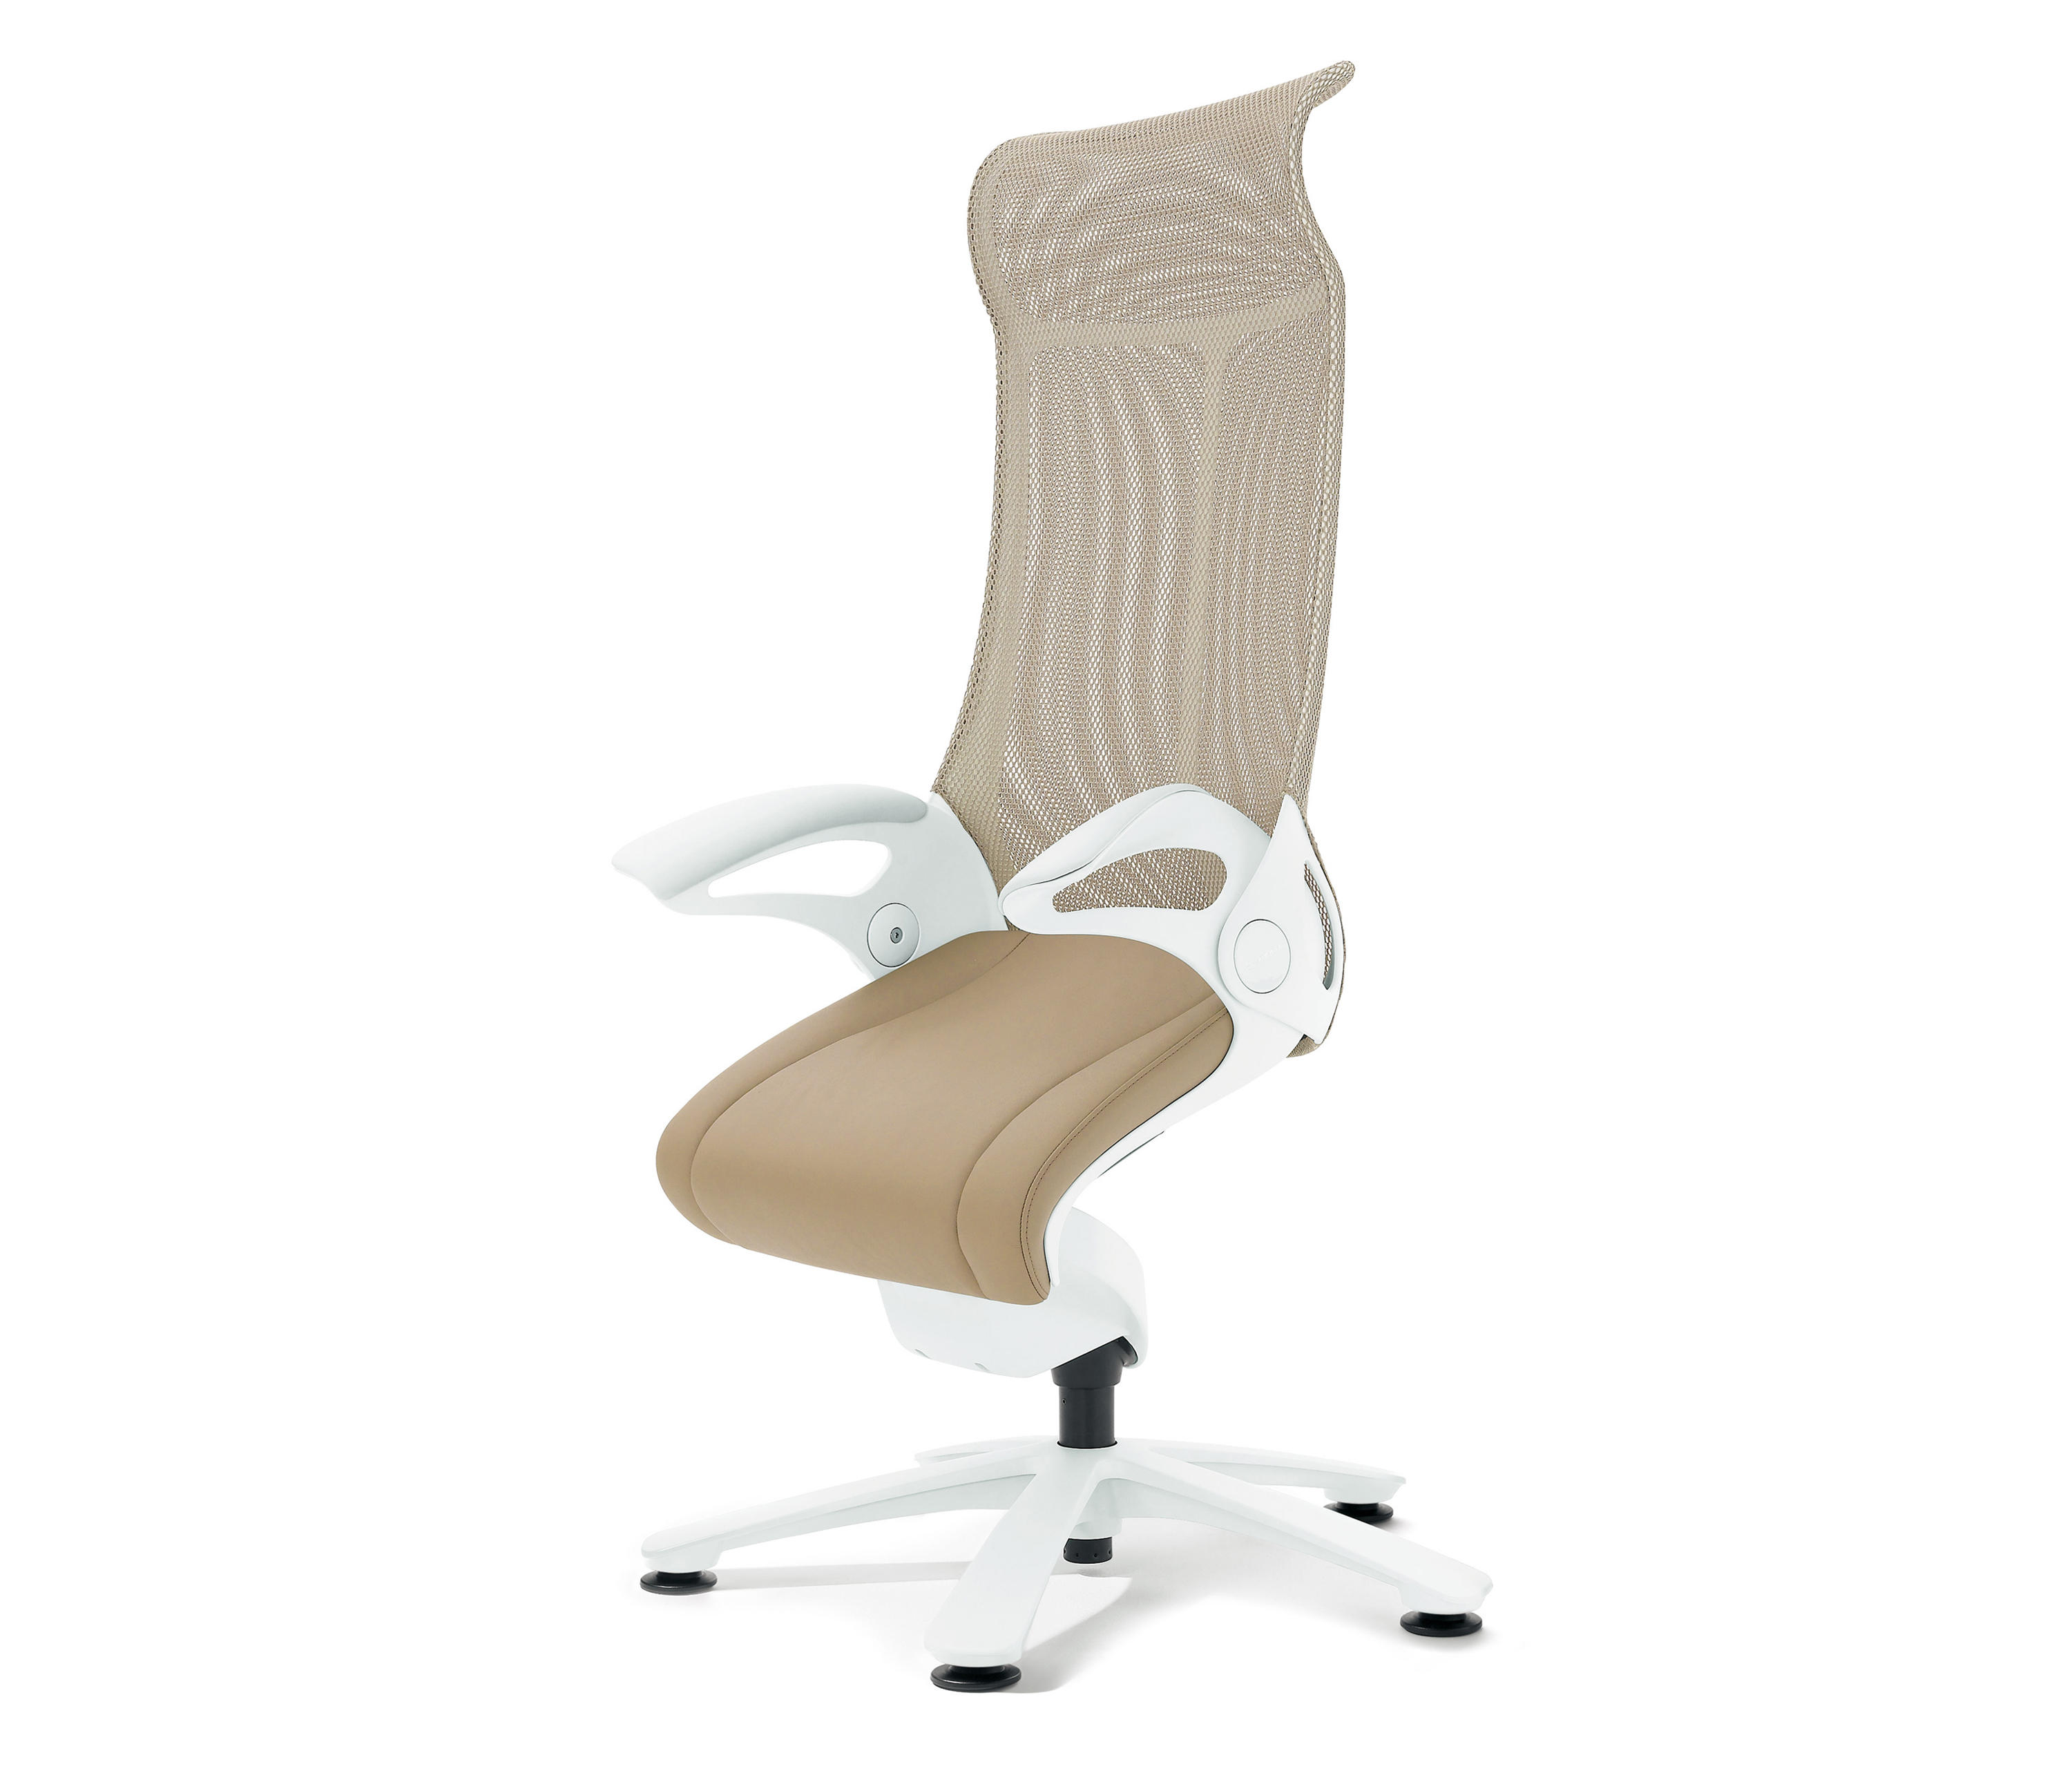 LEOPARD Conference chairs from Okamura